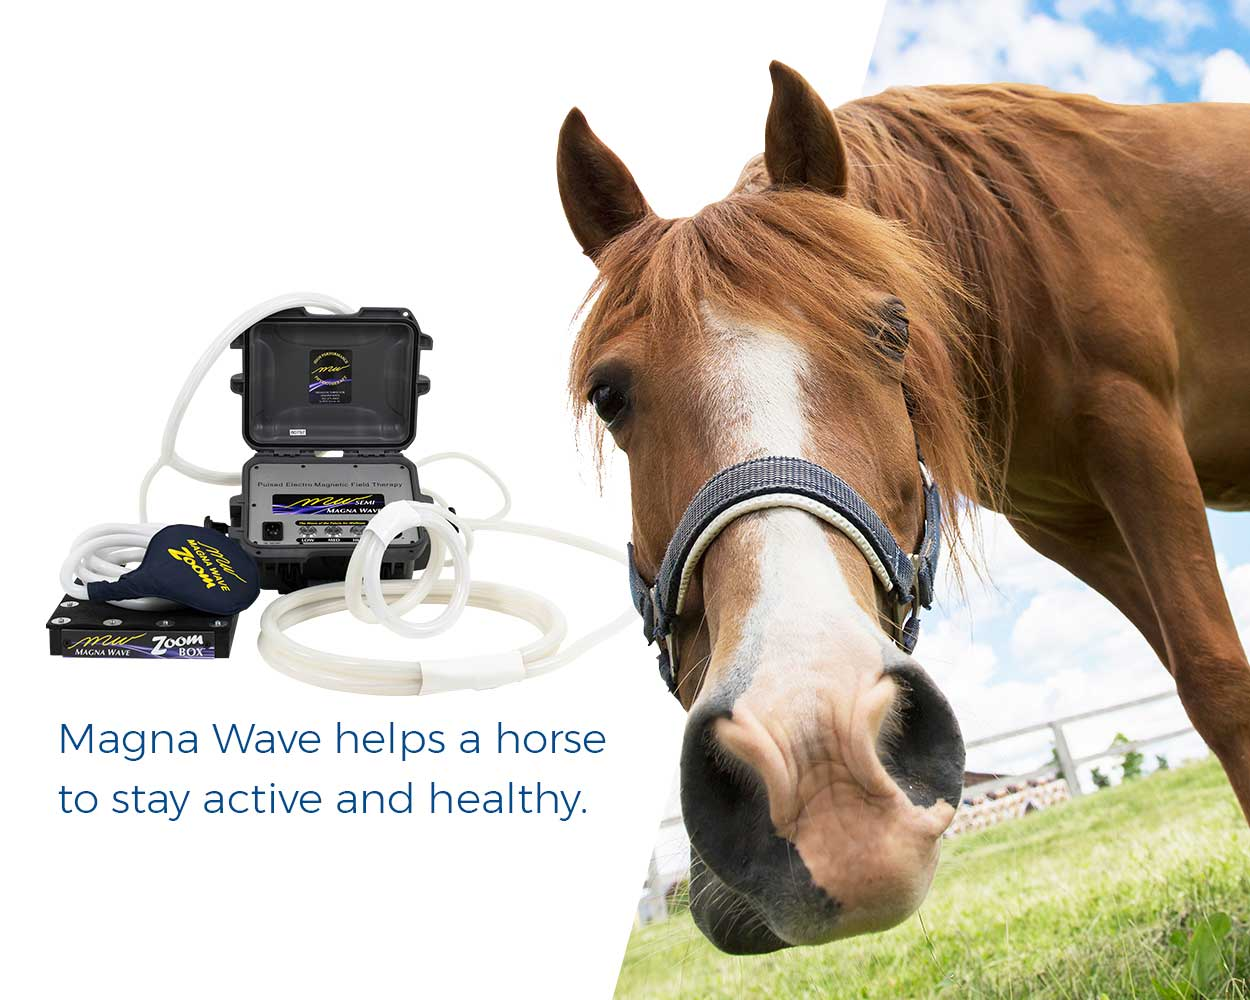 Magna Wave helps a horse to stay active and healthy